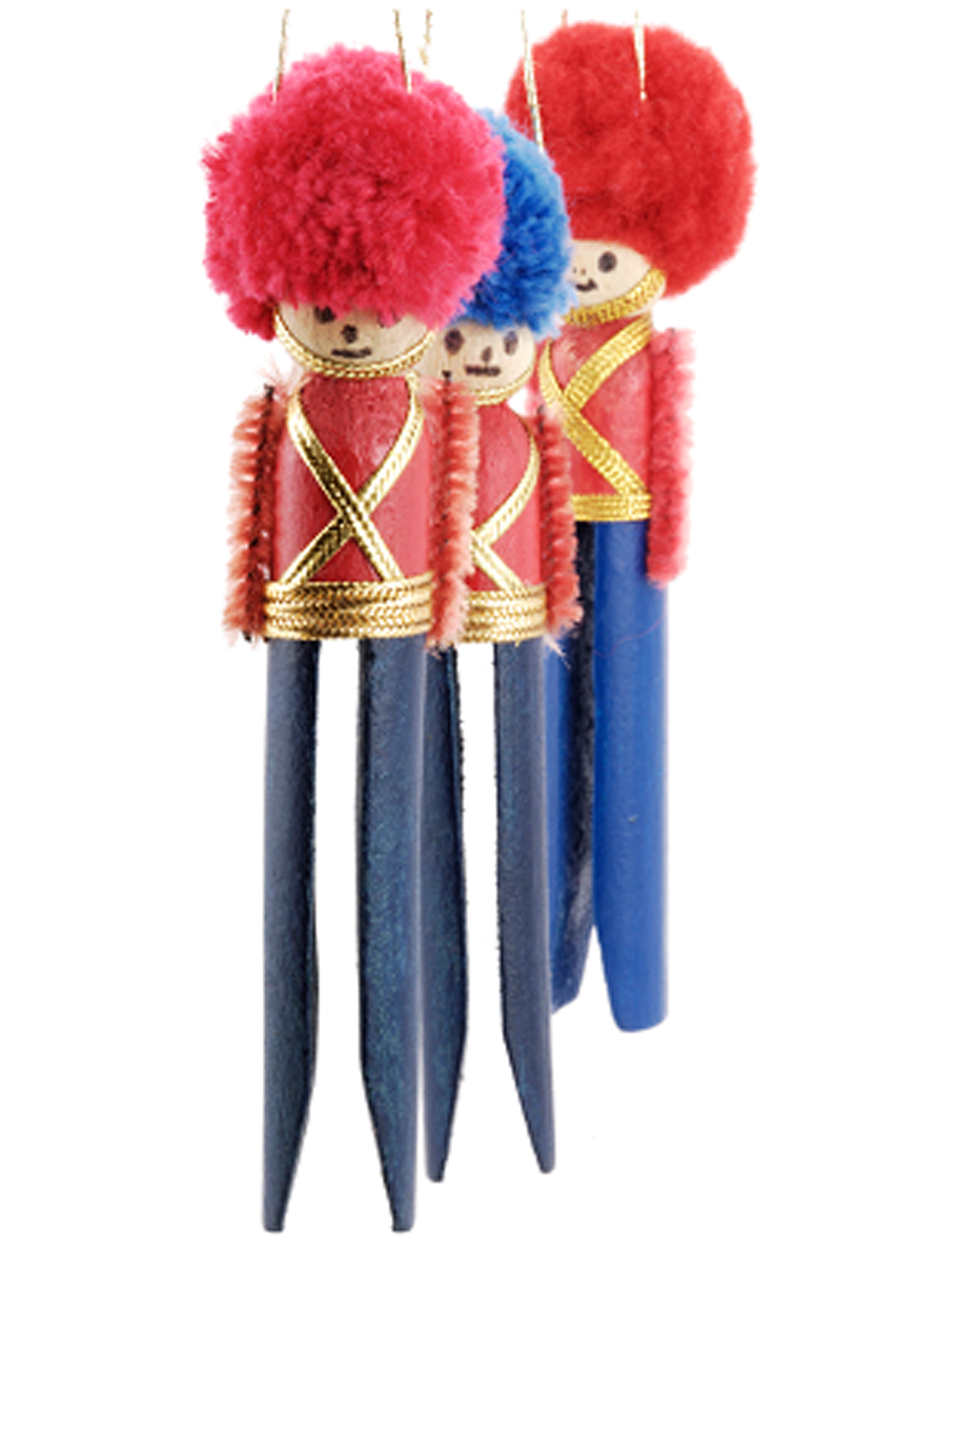 """<p>Topped with adorable pom-pom hats, these clothespin toy soldiers are ready for duty on your tree. </p><p><a href=""""http://www.altogetherchristmas.com/crafts/clothespinsoldiers.html"""" rel=""""nofollow noopener"""" target=""""_blank"""" data-ylk=""""slk:Get the tutorial at Altogether Christmas »"""" class=""""link rapid-noclick-resp""""><em>Get the tutorial at Altogether Christmas »</em></a></p>"""